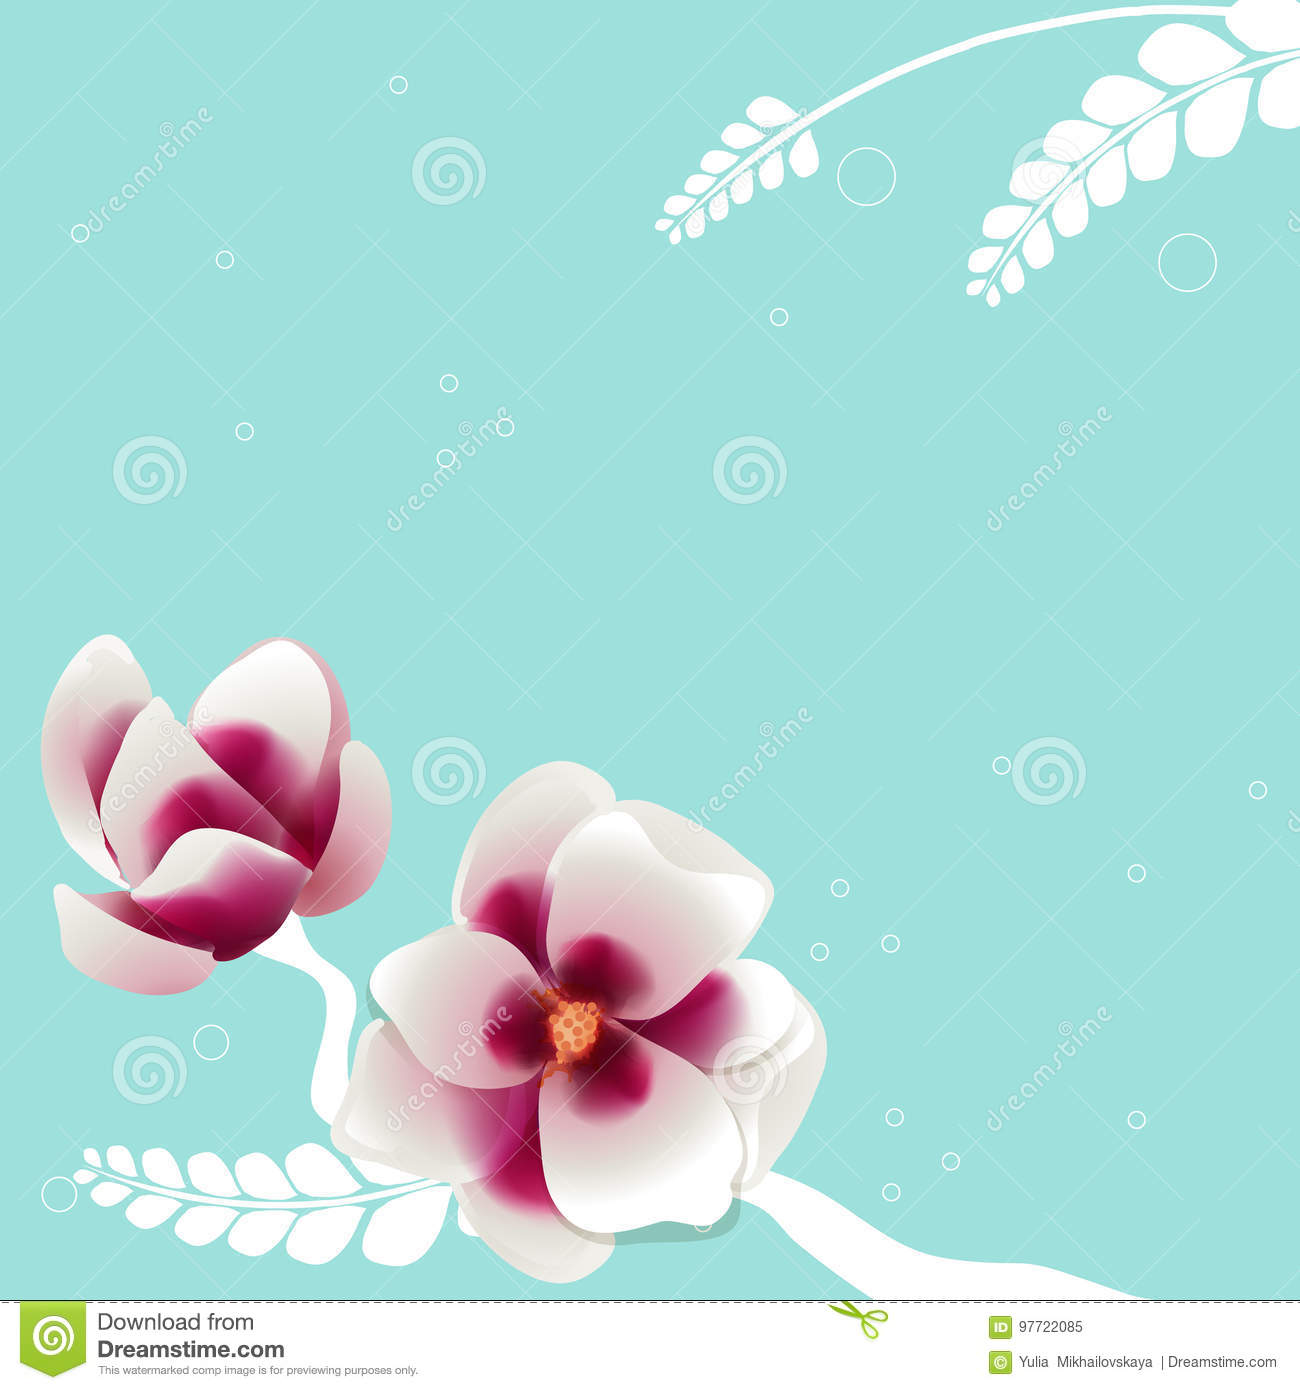 Spring background with blossom brunch of pink flowers template for spring background with blossom brunch of pink flowers template for wedding valentine day filmwisefo